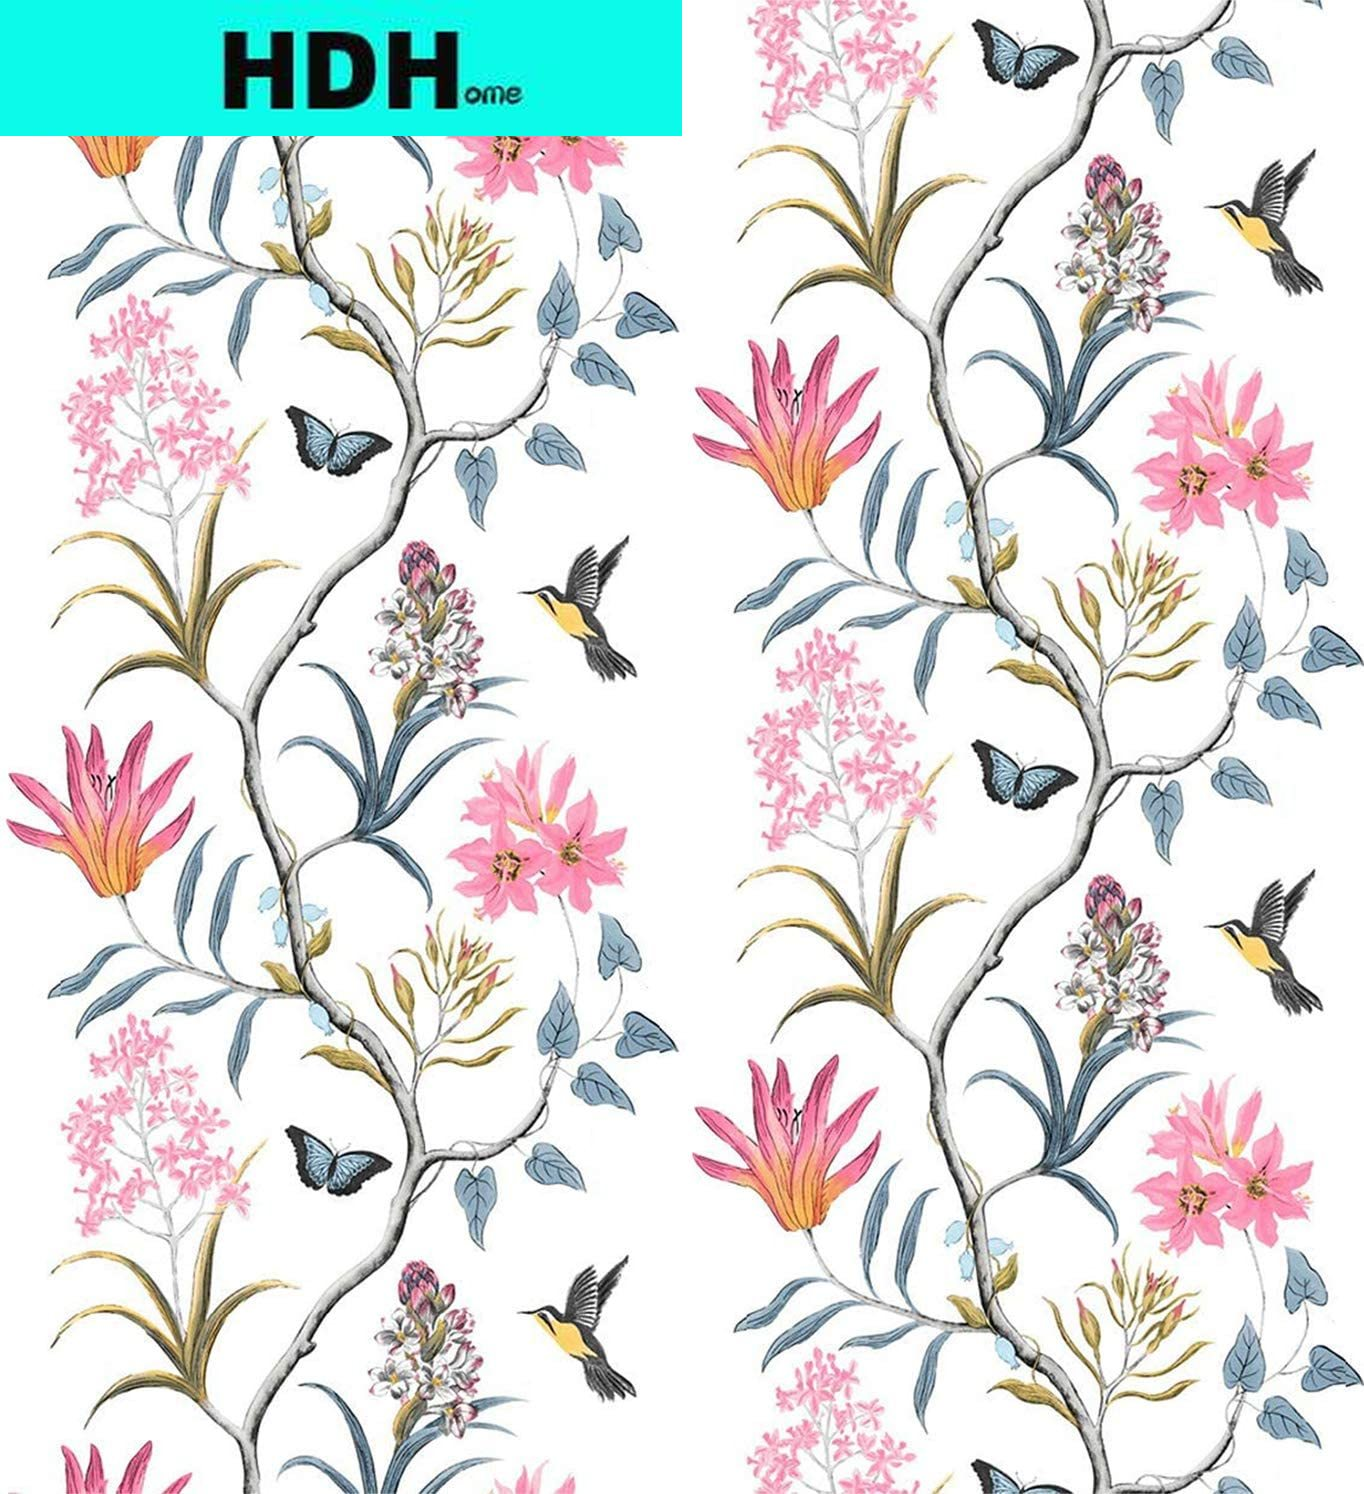 american style bedroom wall covering modern vintage pink floral wallpaper blue tropical butterfly birds flower wall paper Floral Wallpaper Vintage Self-Adhesive Wallpaper Removable Pink Wallpaper Leaf Bird Peel and Stick Wall Paper PVC Wall Decor